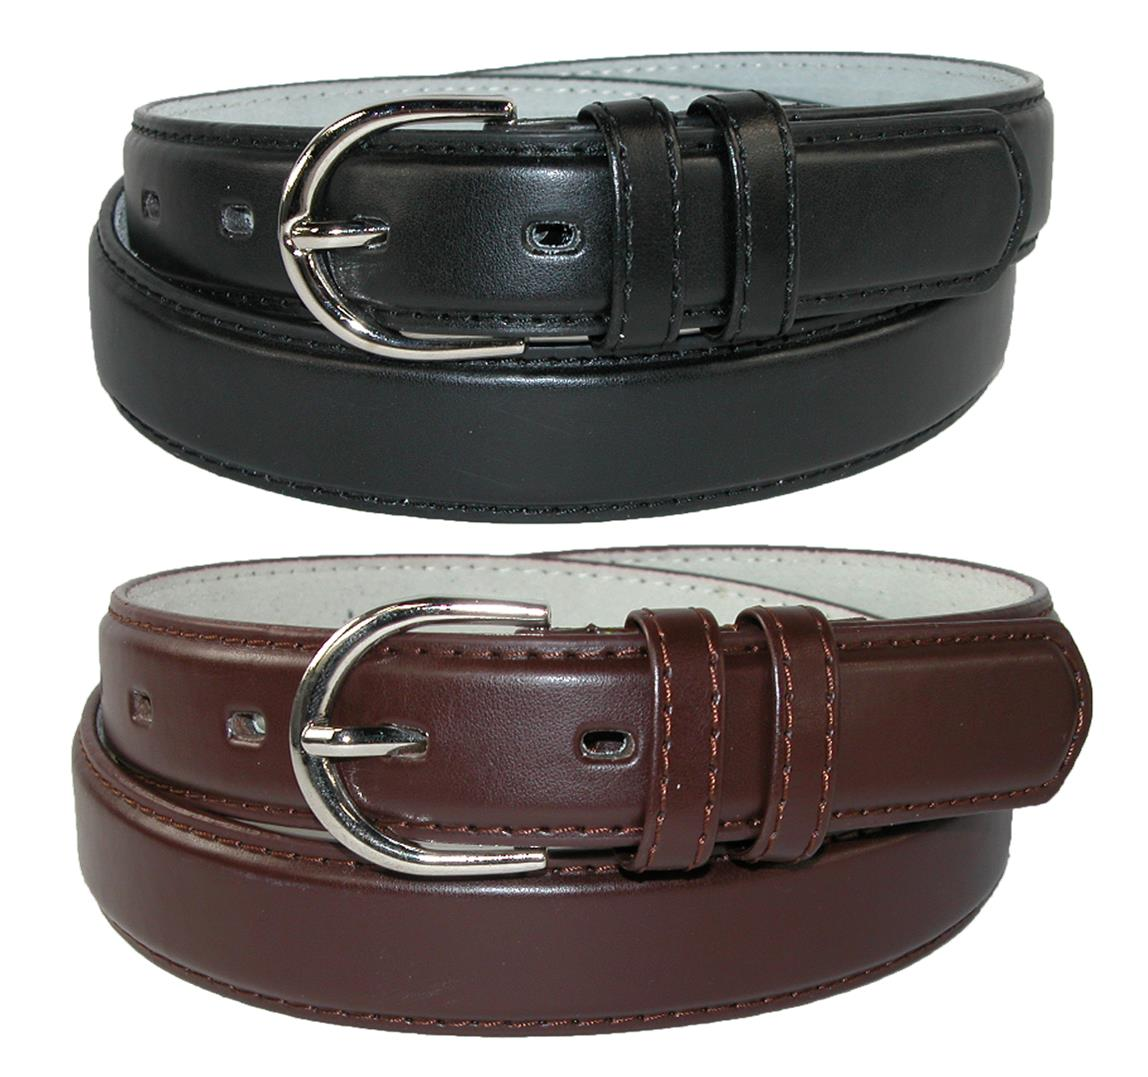 CTM��  Women's Leather 1 1/8 Inch Dress Belt (Pack of 2 Colors)